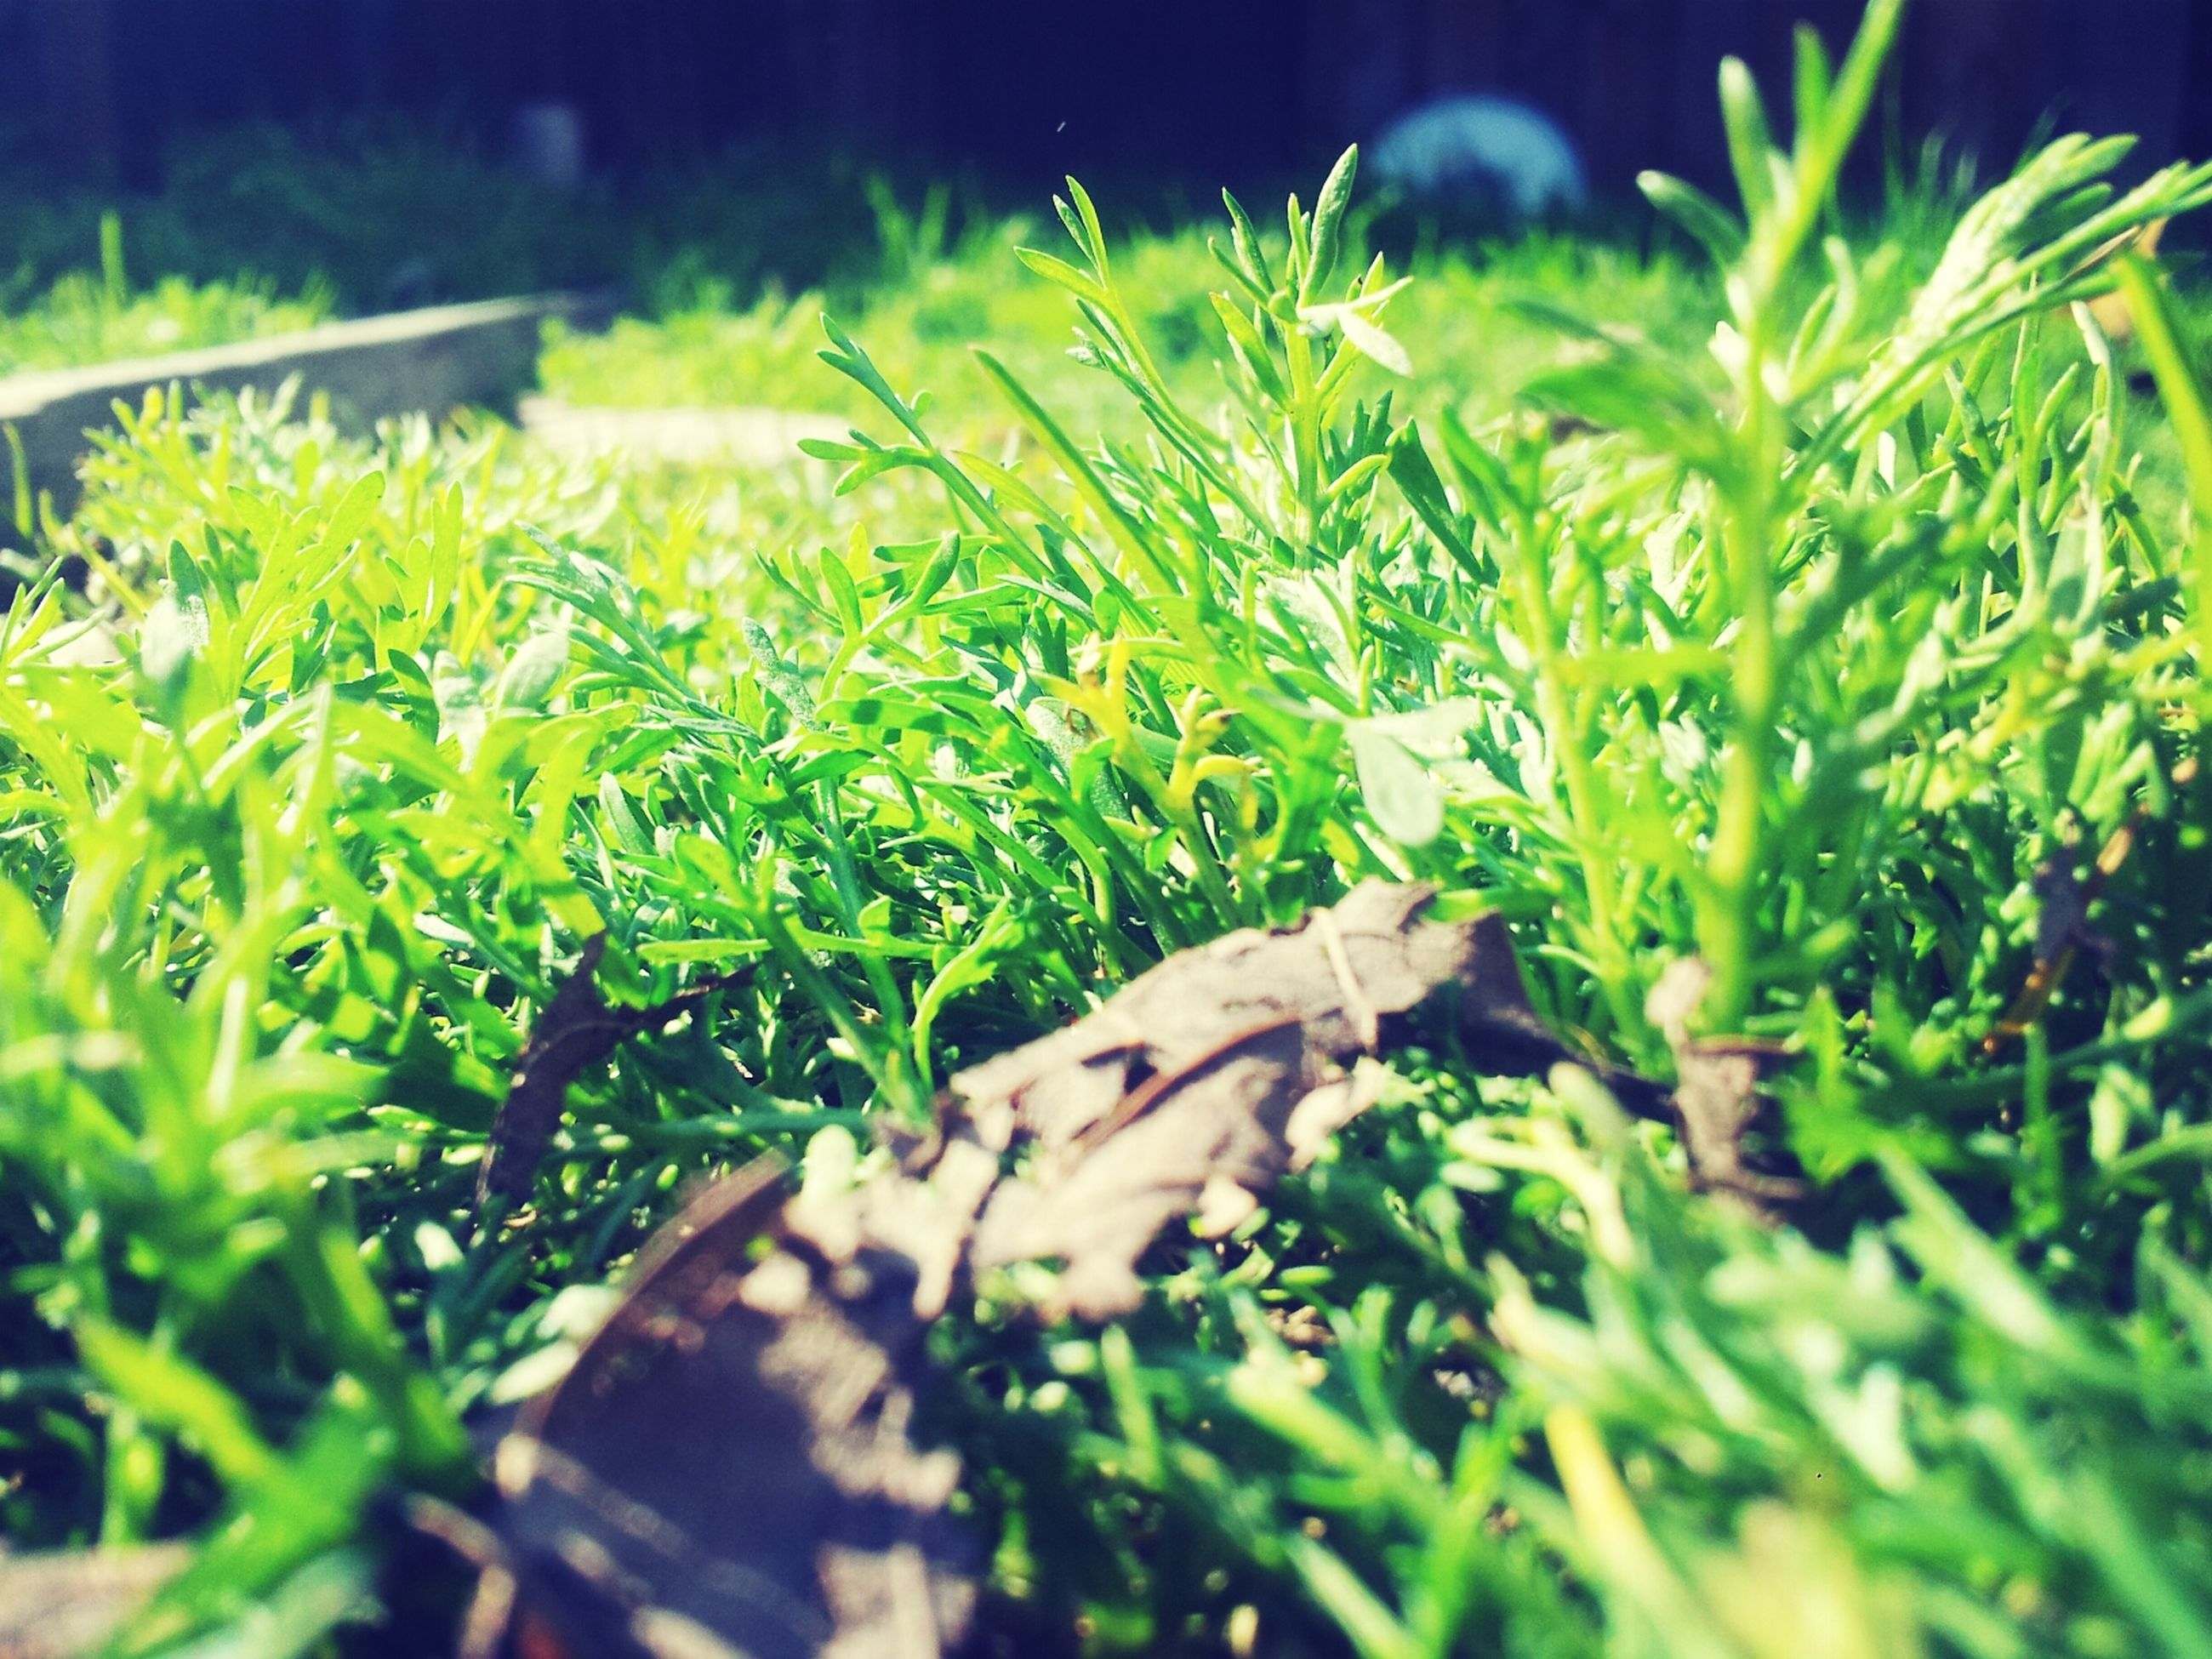 growth, green color, plant, grass, selective focus, nature, field, close-up, tranquility, green, beauty in nature, growing, focus on foreground, leaf, outdoors, sunlight, day, surface level, no people, focus on background